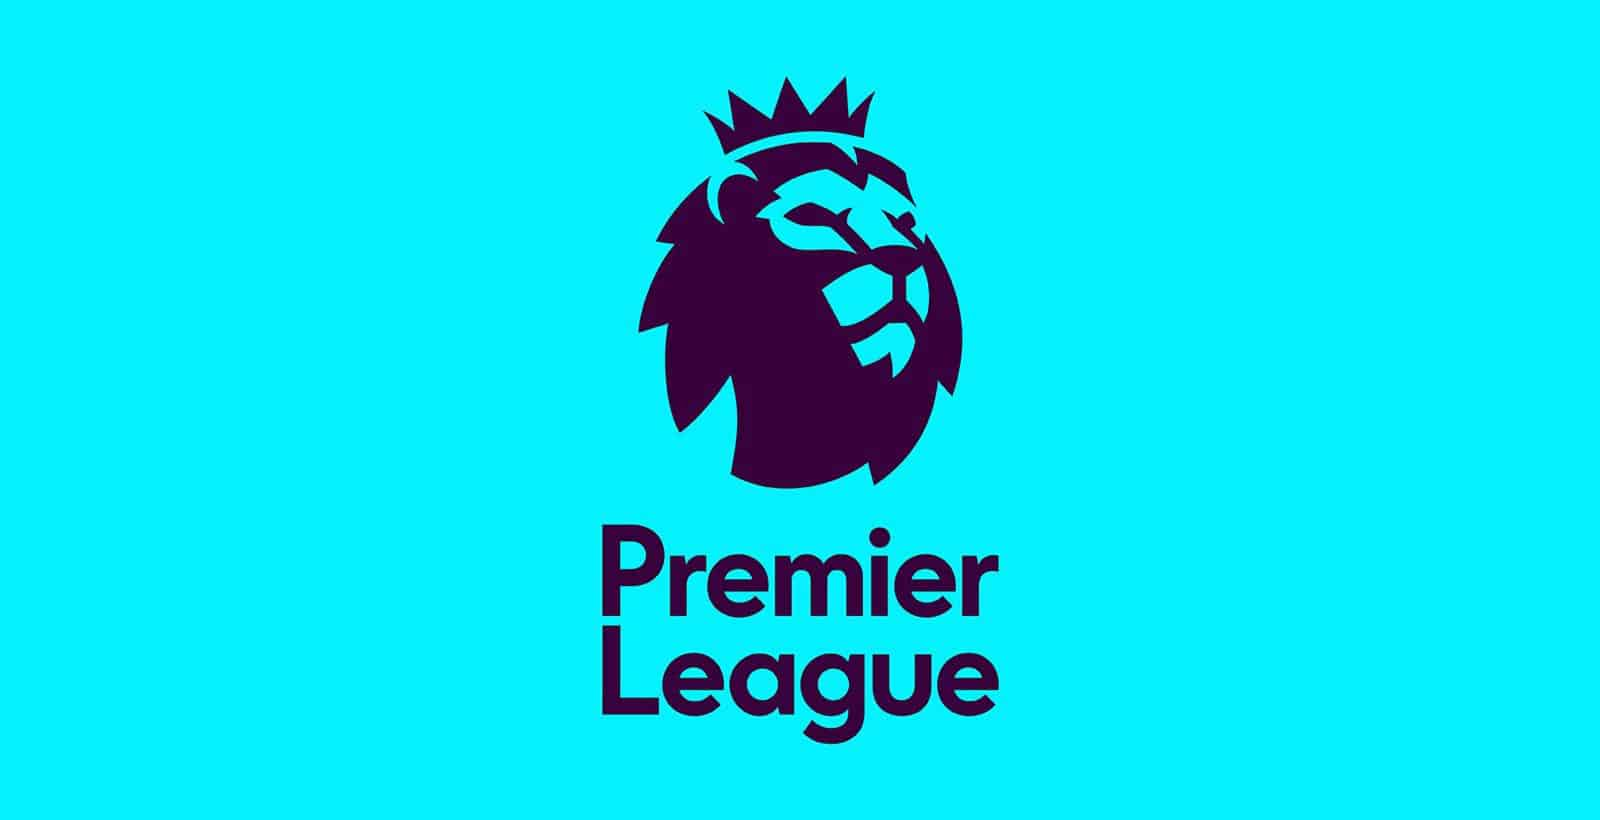 Premier League weekend round up